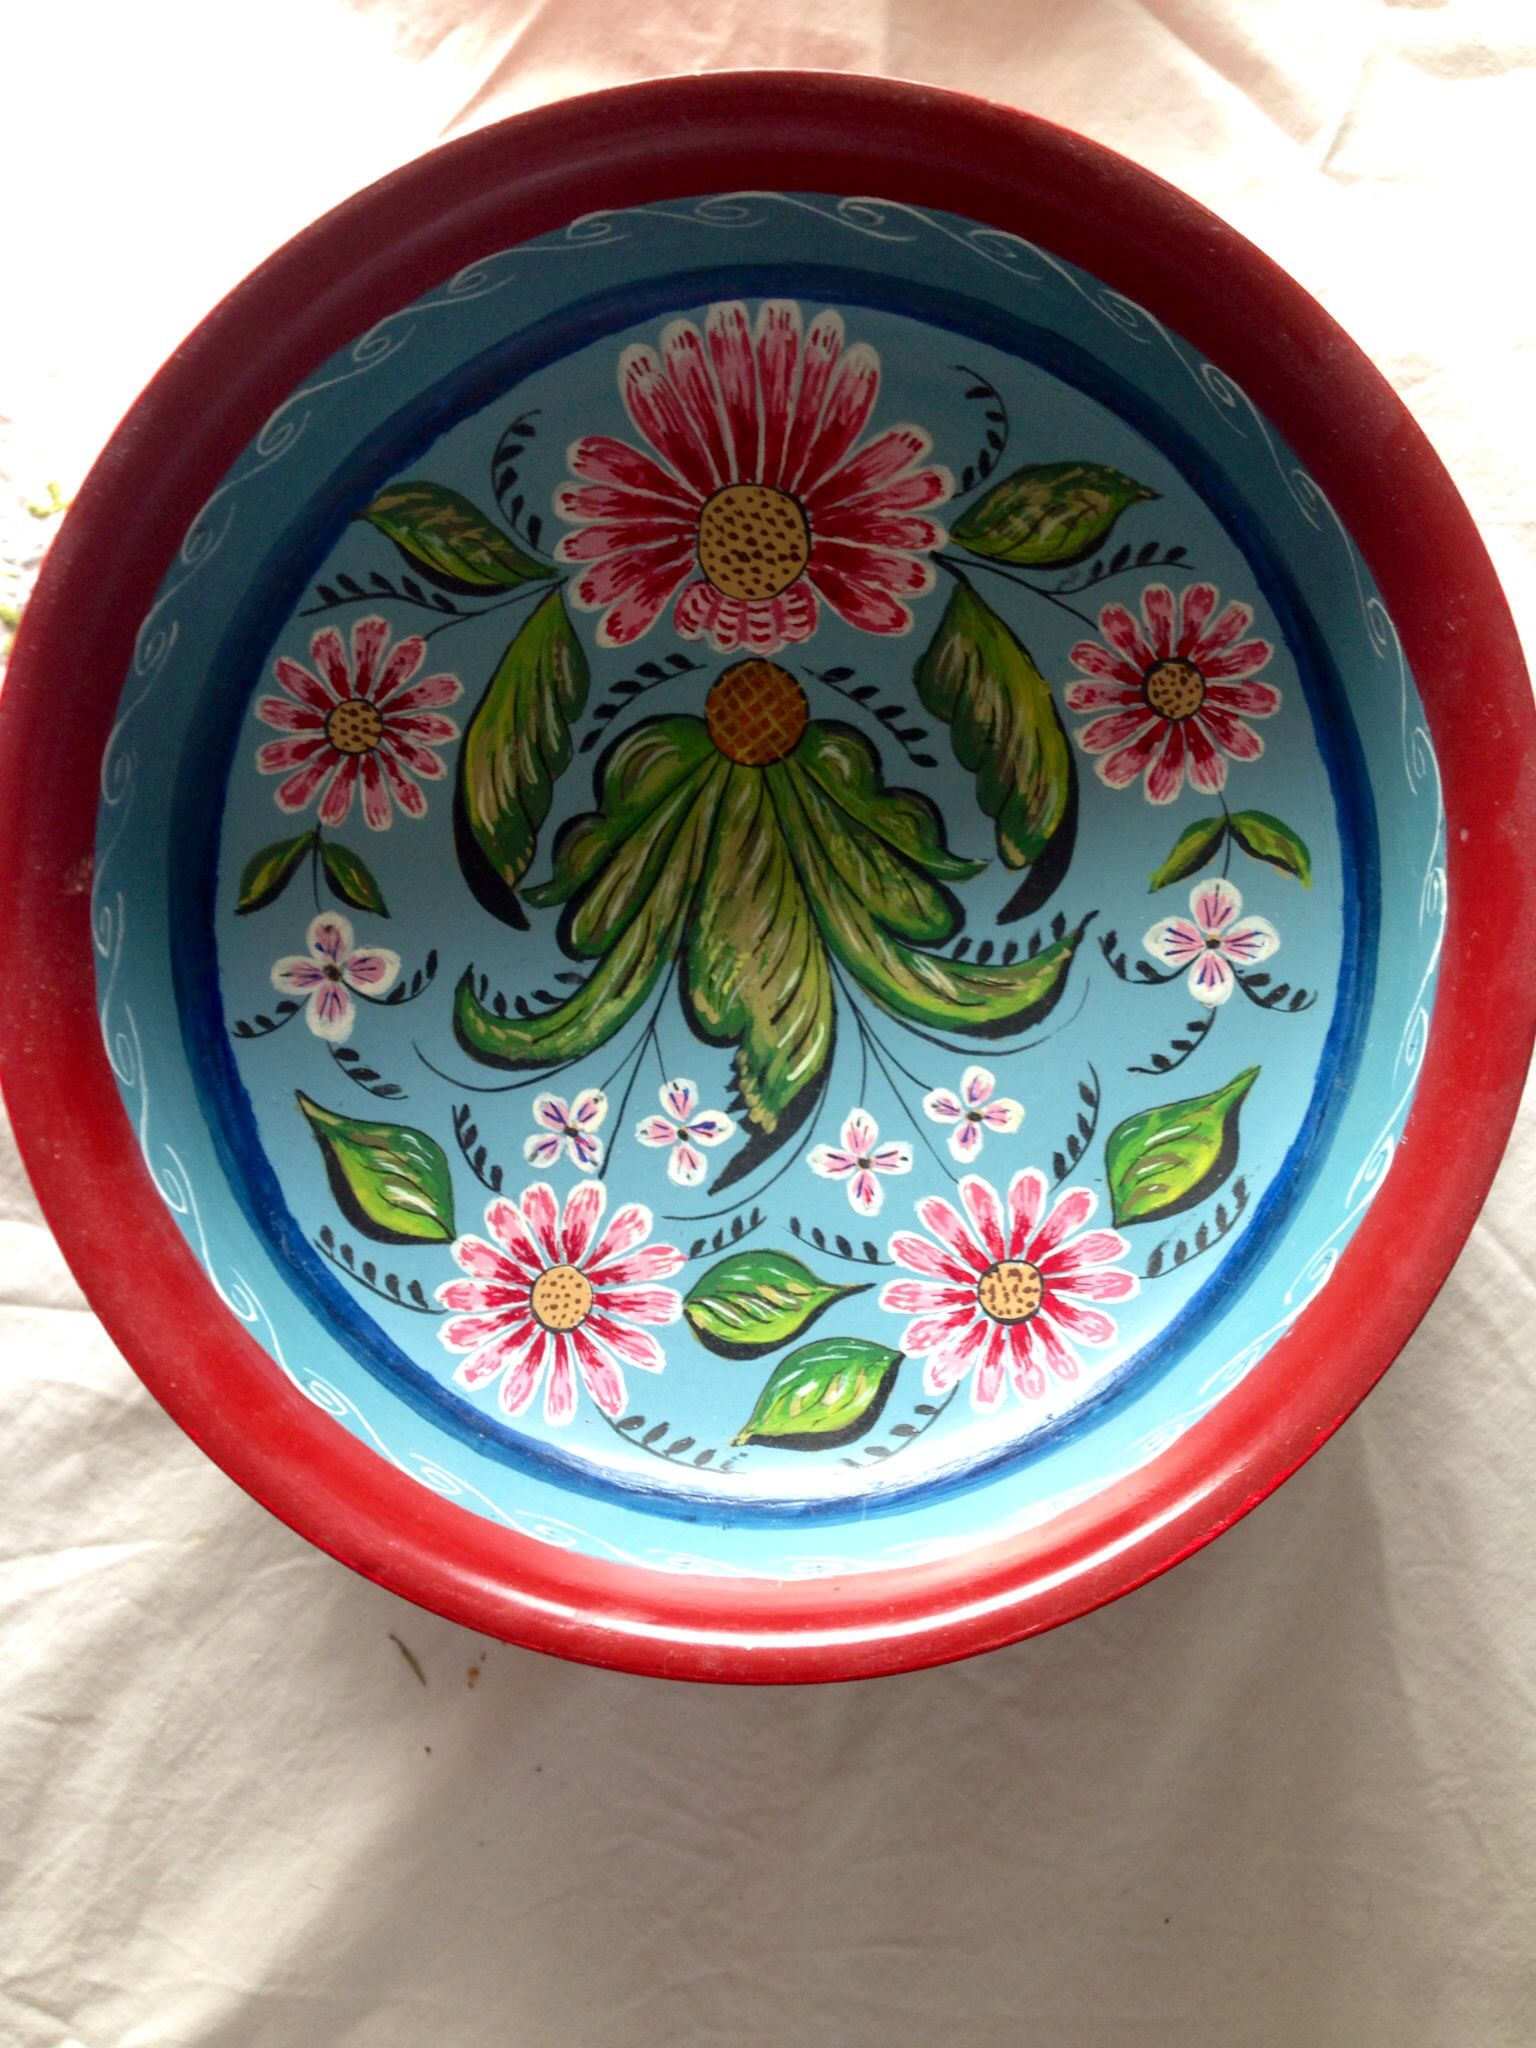 Rosemaling Artist And Area Unknown